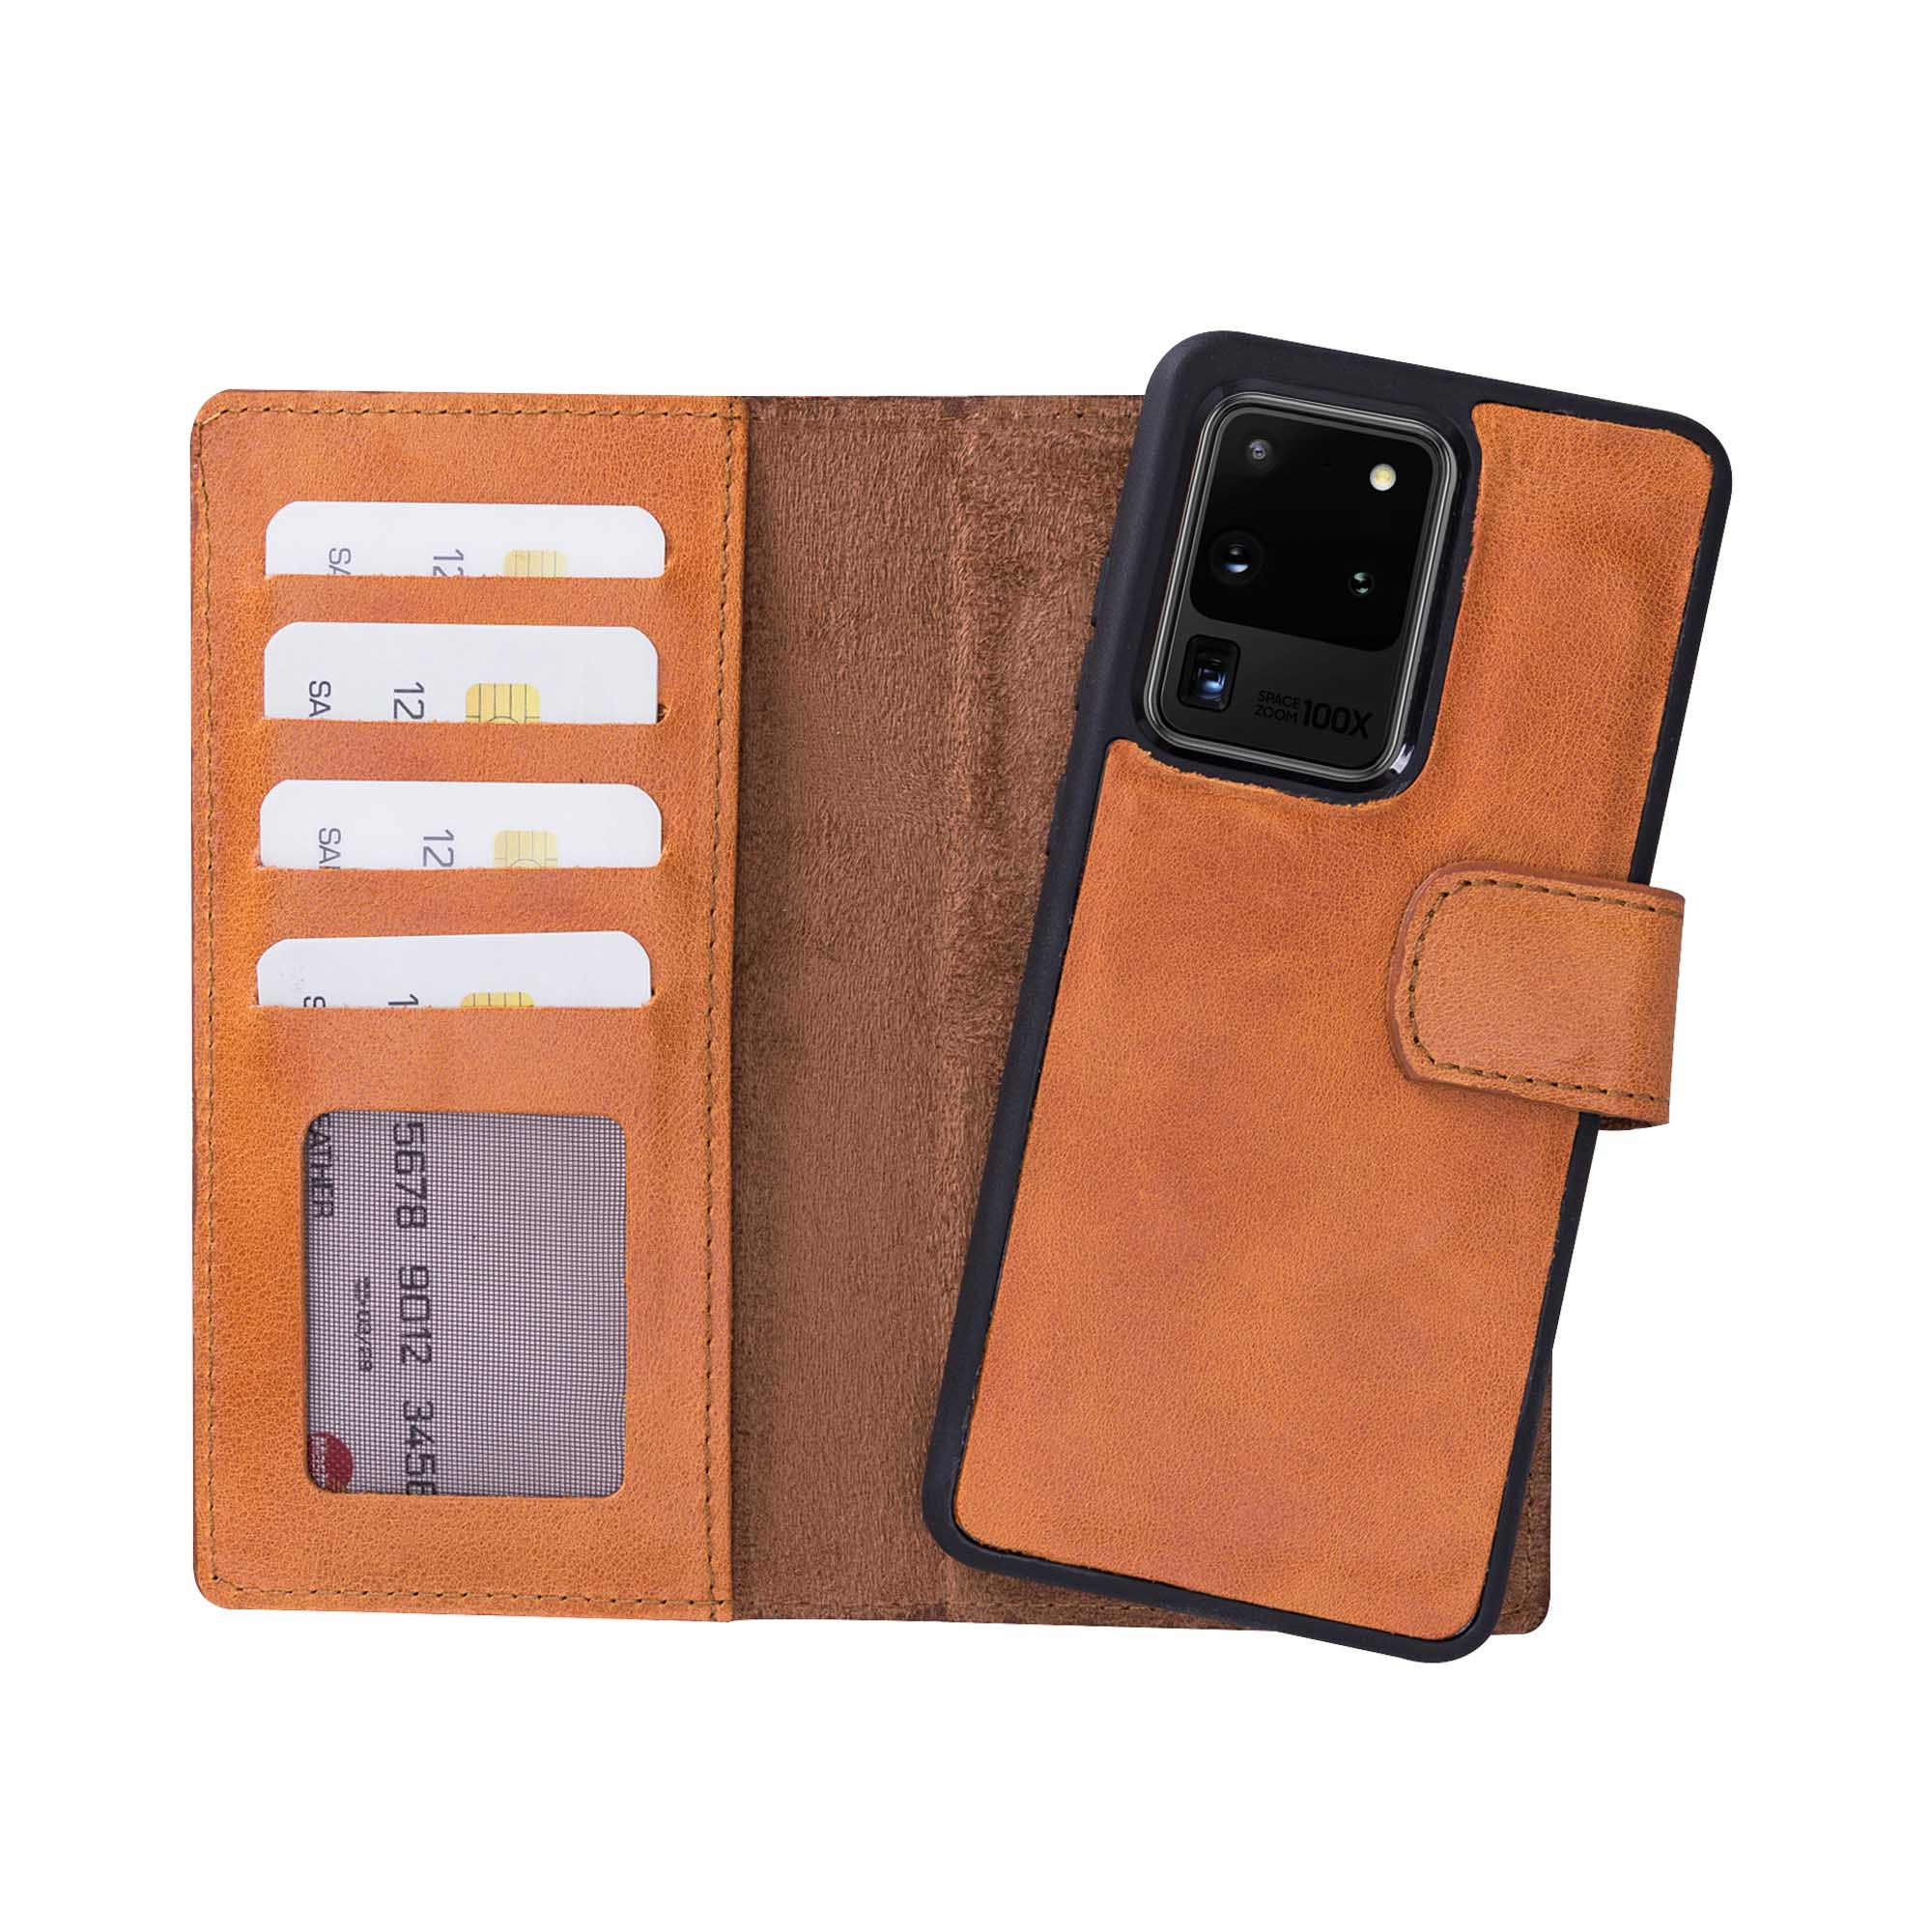 "Liluri Magnetic Detachable Leather Wallet Case for Samsung Galaxy S20 Ultra (6.9"") - TAN"